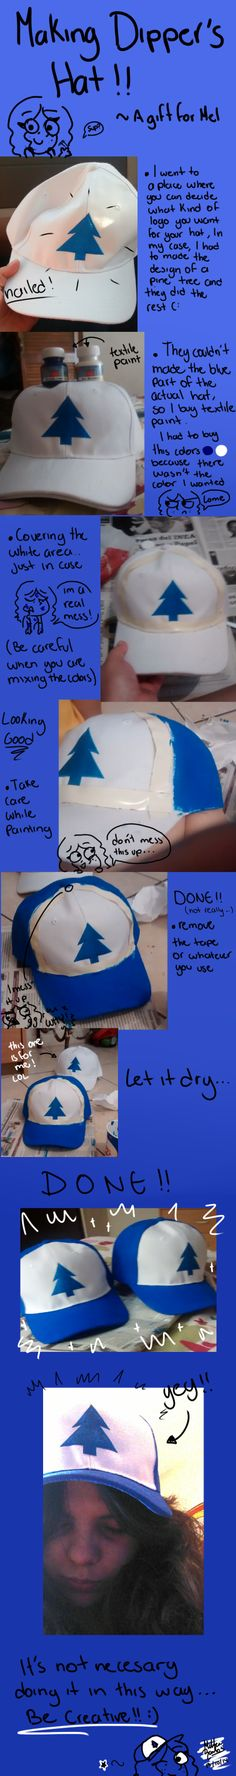 Making Dipper's hat by MeeeLifer.deviantart.com on @DeviantArt